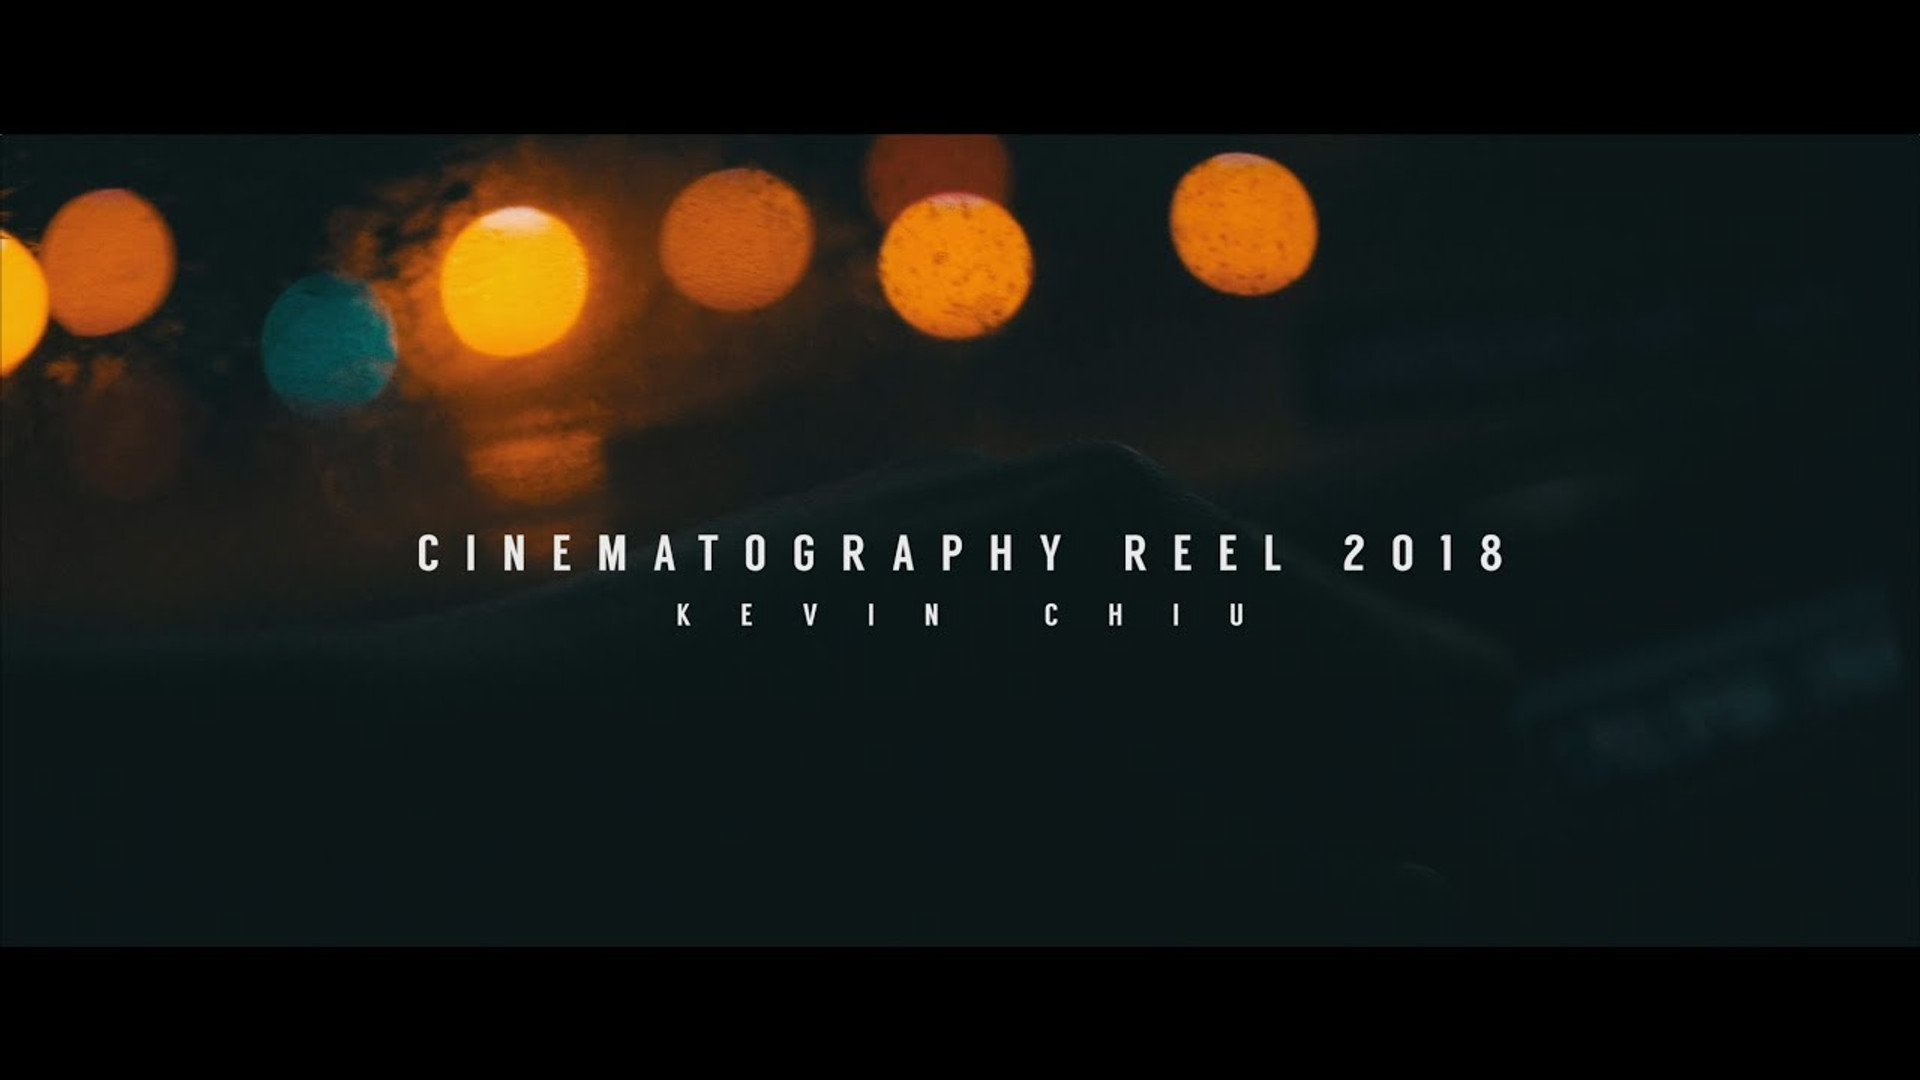 Cinematography Reel 2018